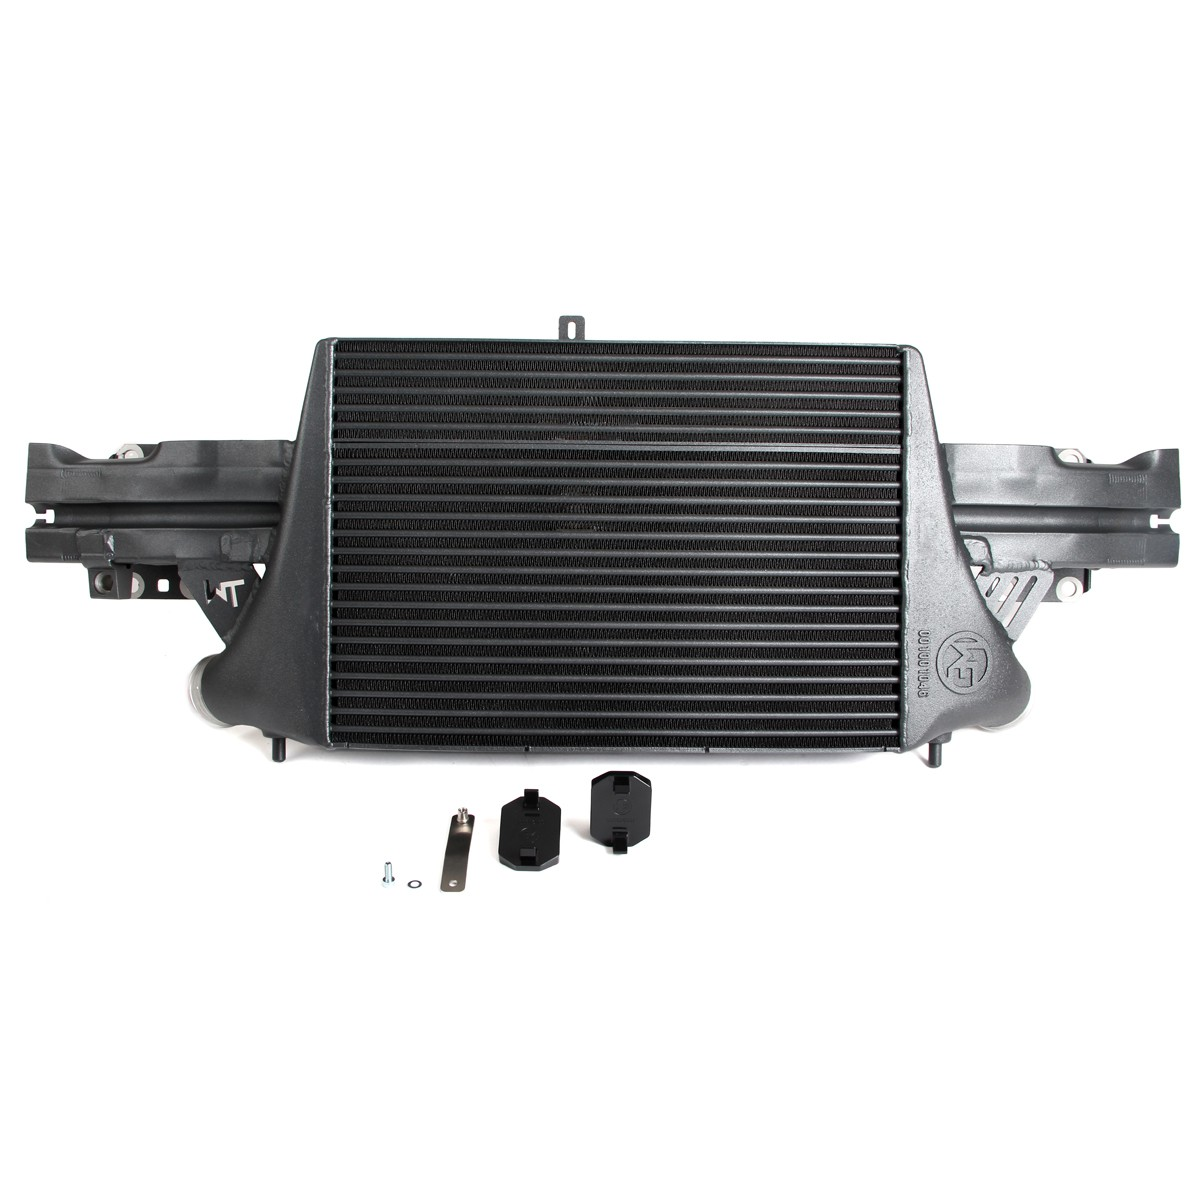 Intercooler Kit, Audi TT RS 2 5 TFSI, EVO 3 with Crossmember